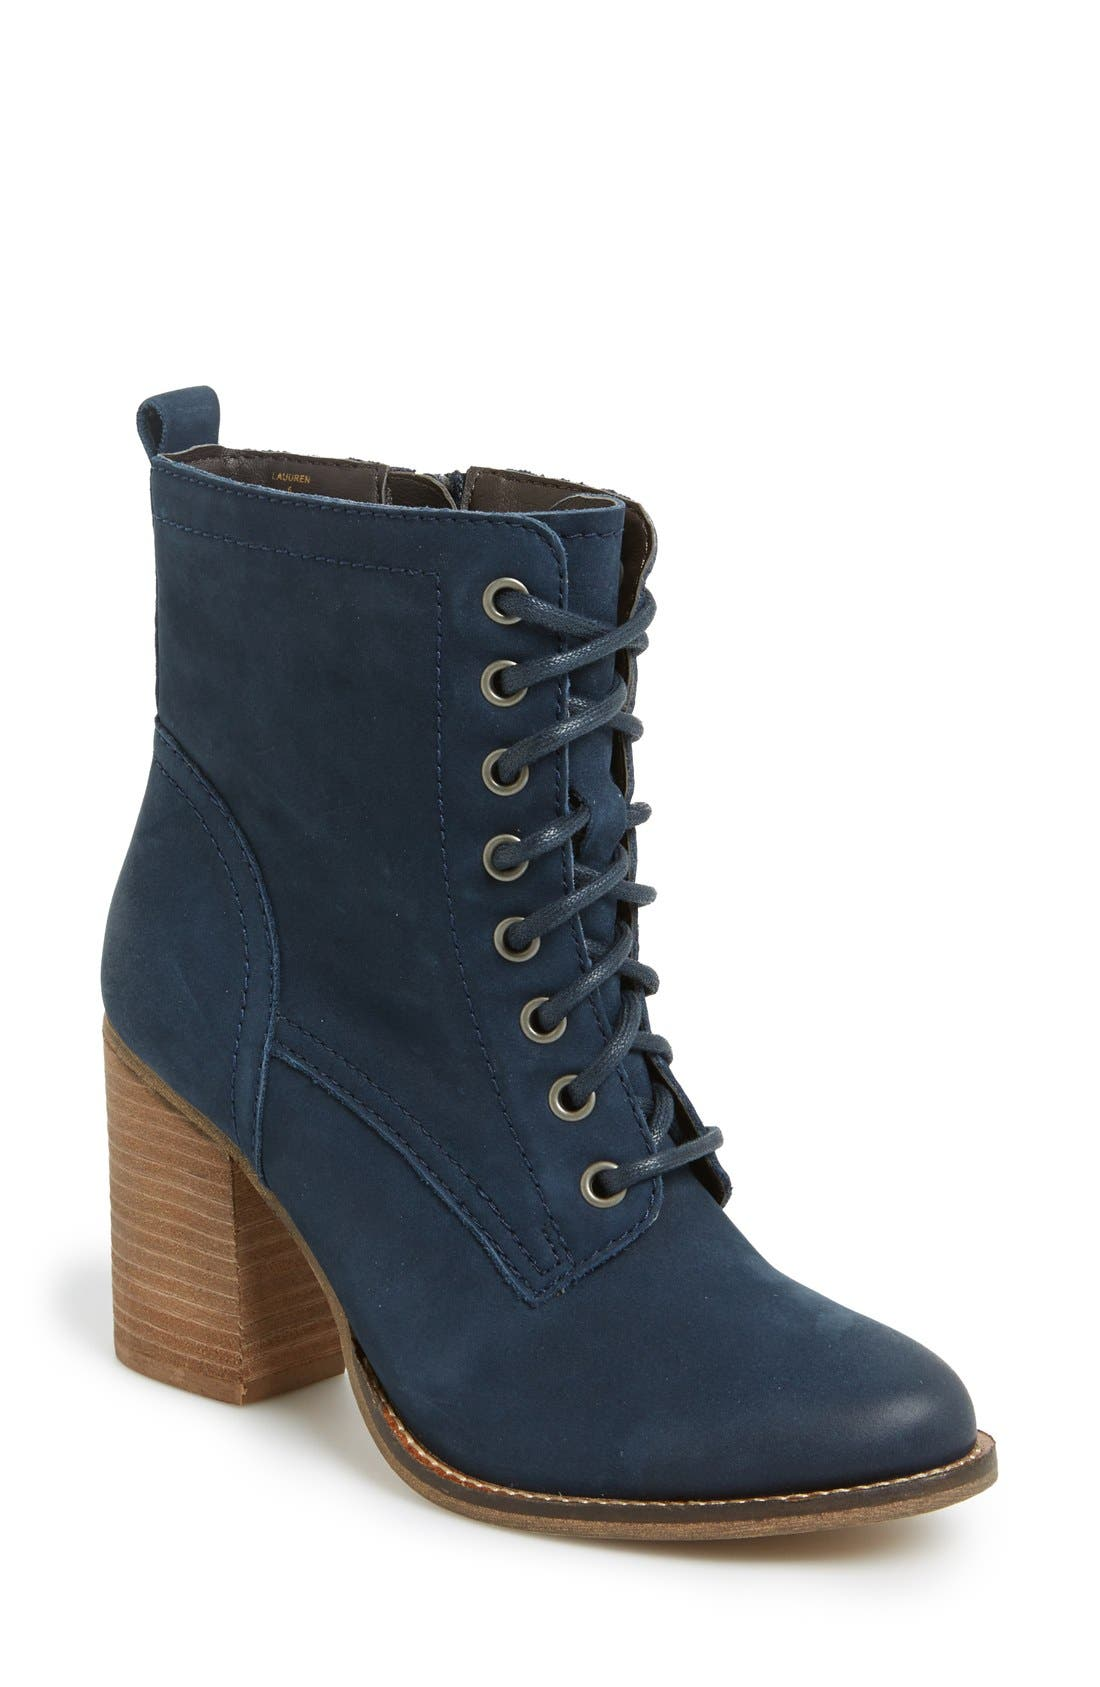 Alternate Image 1 Selected - Steve Madden 'Lauuren' Lace-Up Bootie (Women)